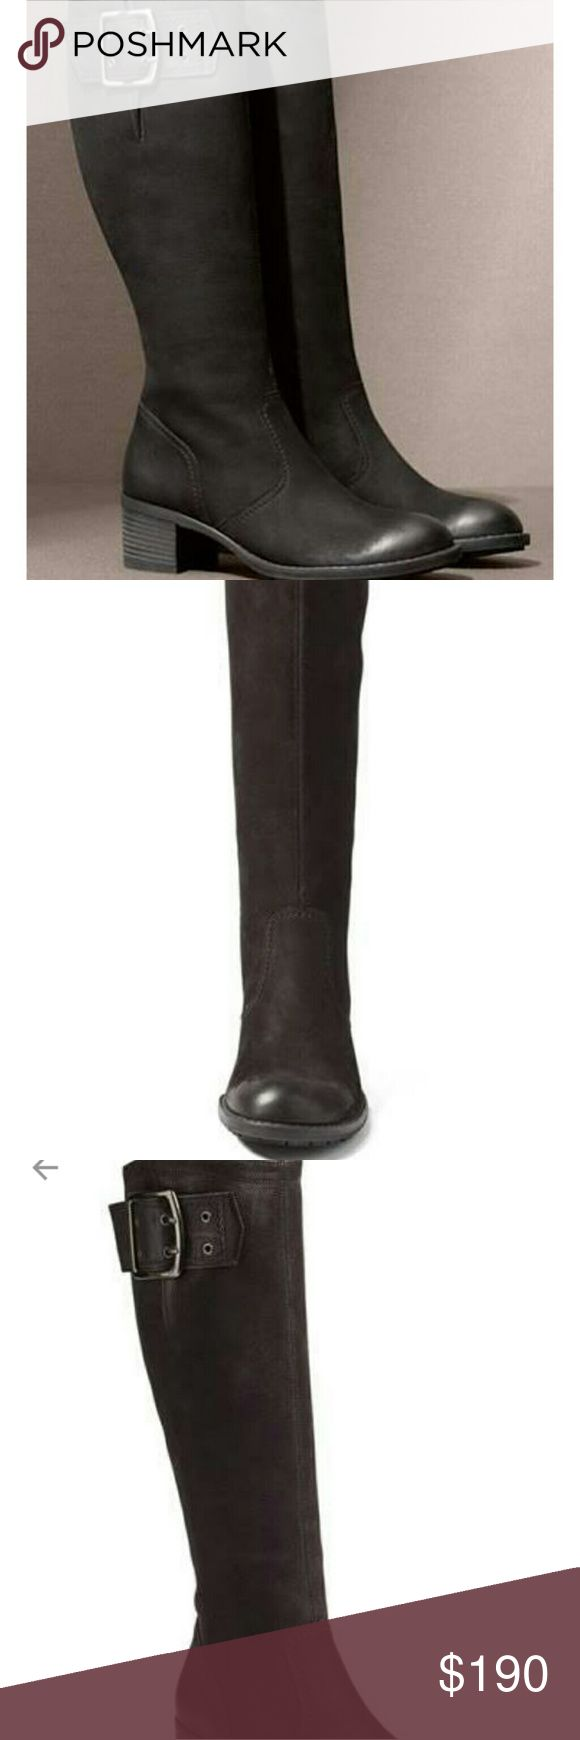 """🐰🐰SALE! Paul Green Kendra Knee High Buckle Boot Paul Green Kendra Knee high Boot Black nubuk leather Quartz nubuk leather Block heel approx 2"""" Zipper side closure Adjustable buckle (last pic) Like new condition Paul Green Shoes"""